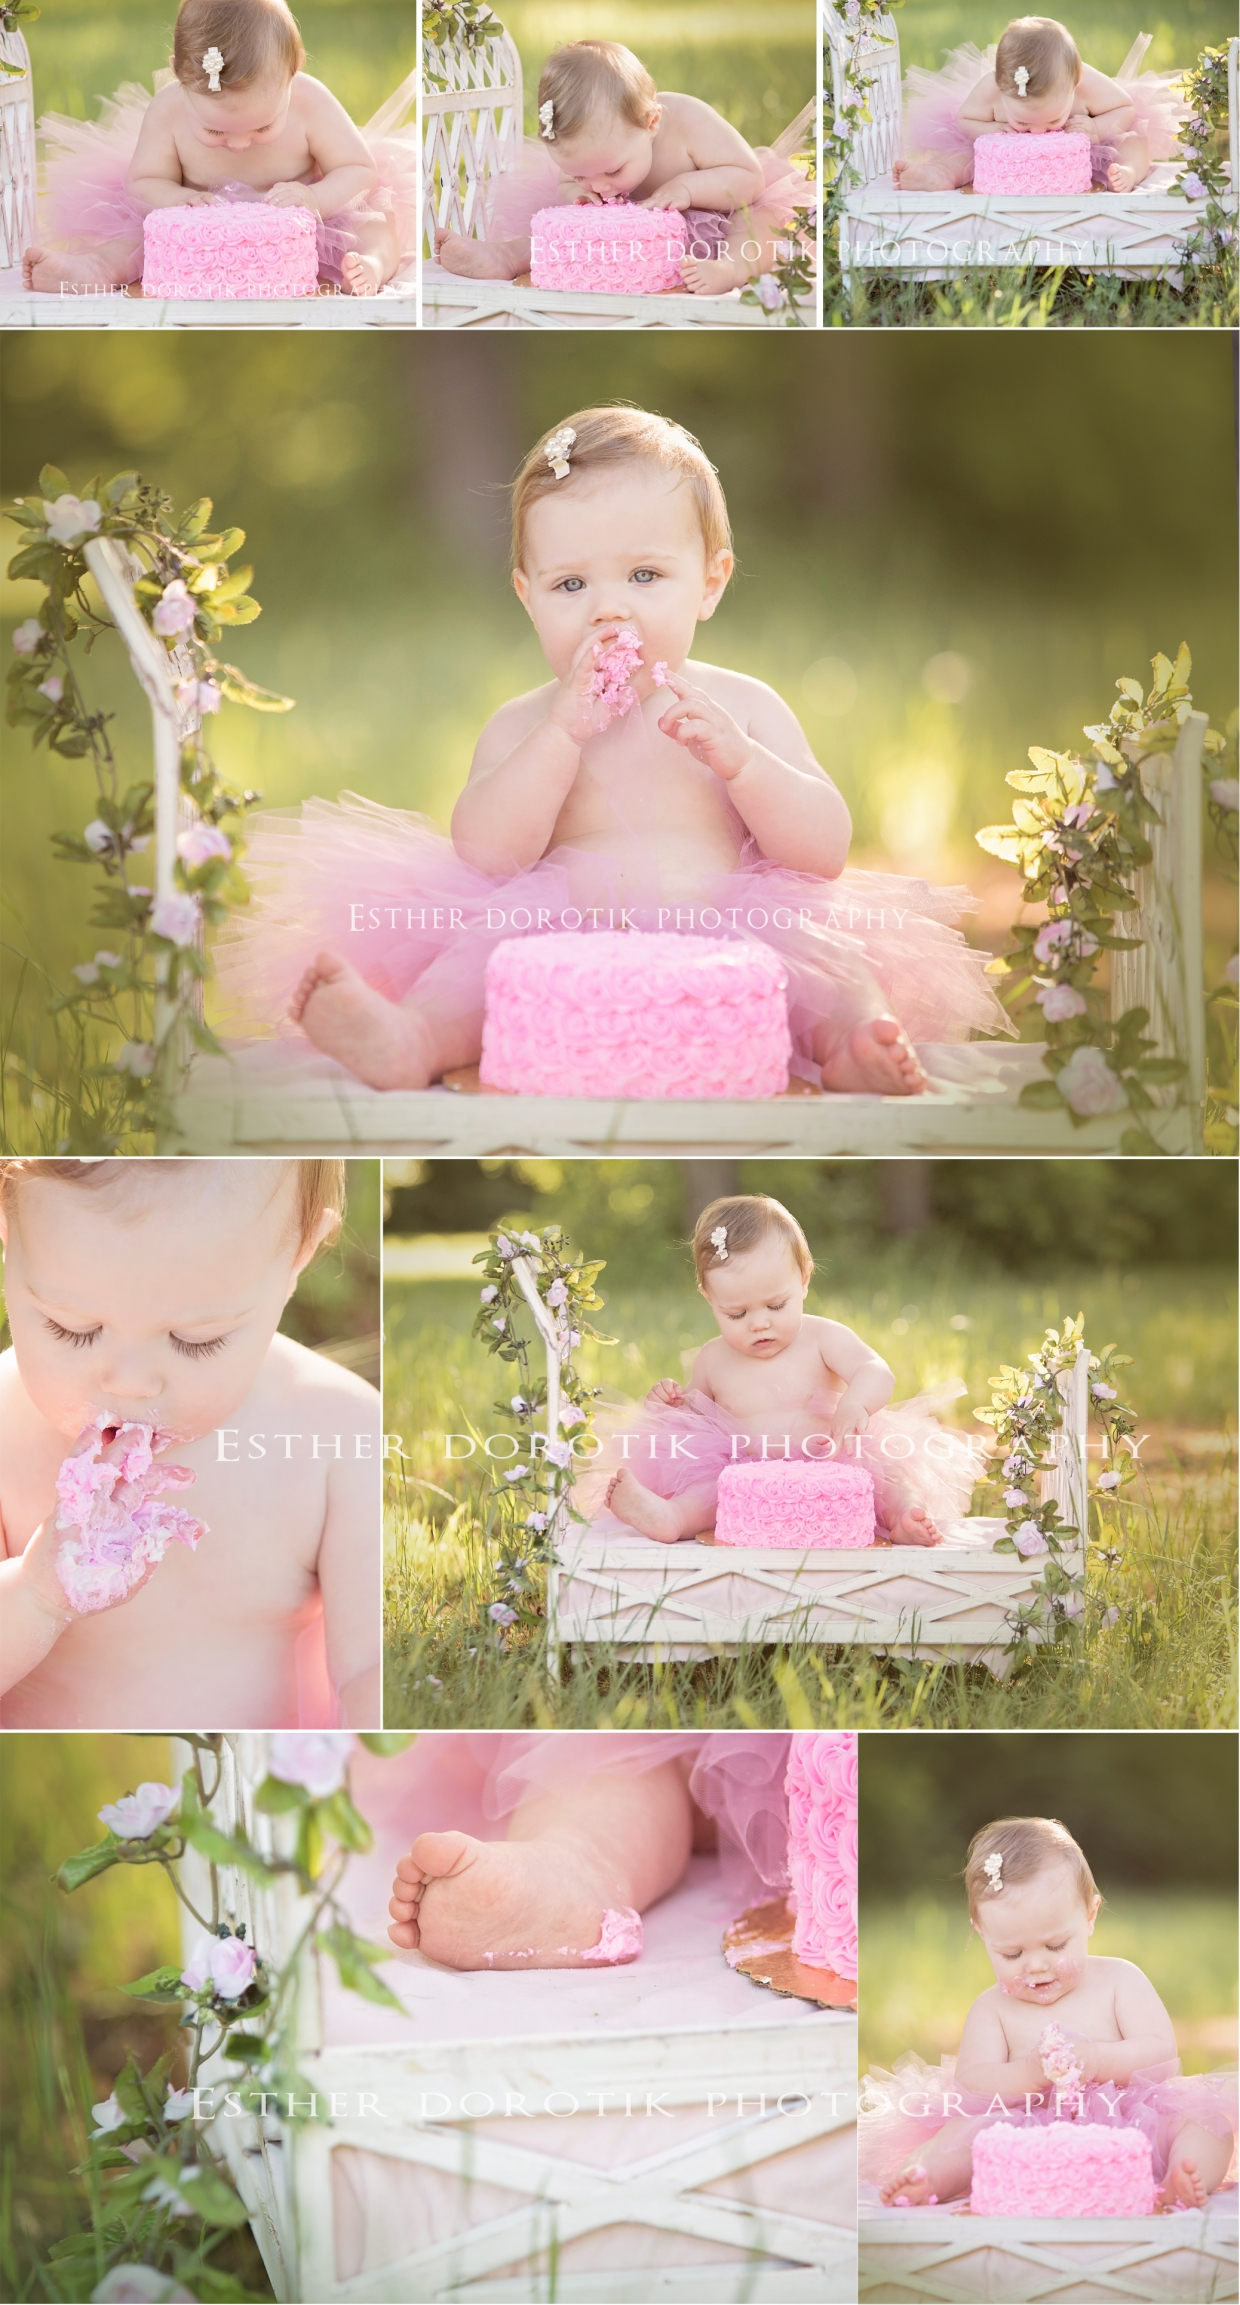 one-year-old-photo-of-little-girl-in-tutu-smashing-cake-by-Flower-Mound-photographer